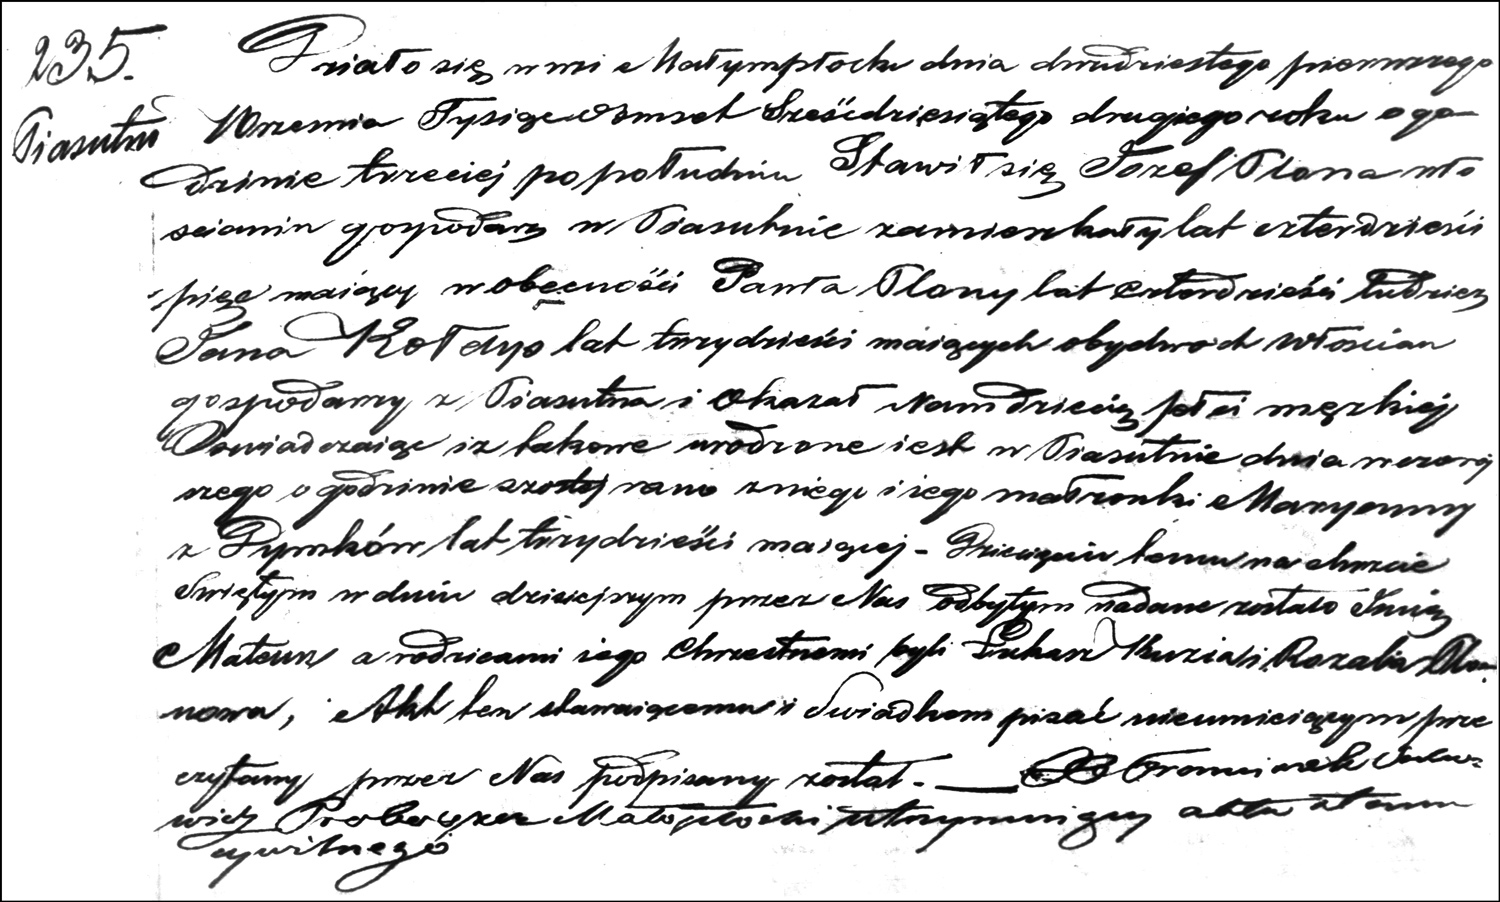 The Birth and Baptismal Record of Mateusz Plona – 1862